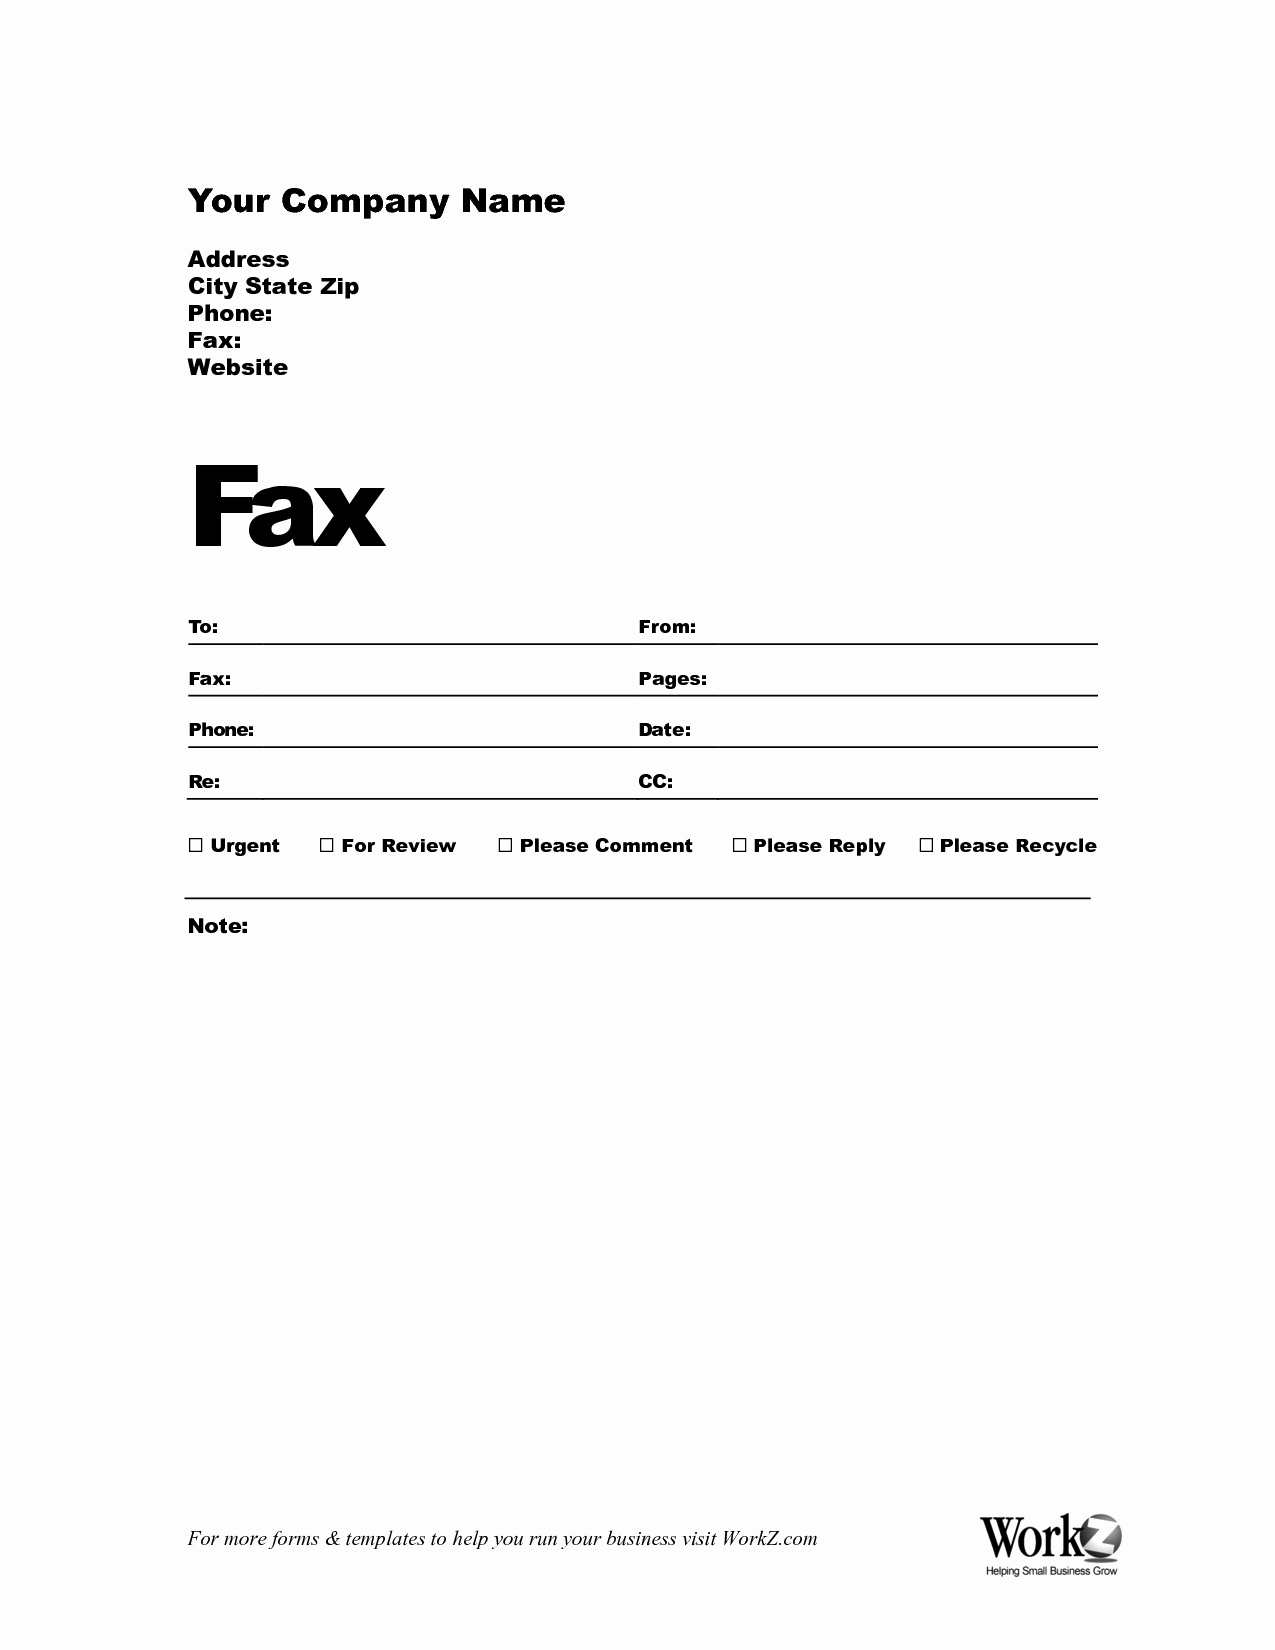 Sample Of Fax Cover Page Elegant Free Fax Cover Sheet Template Bamboodownunder